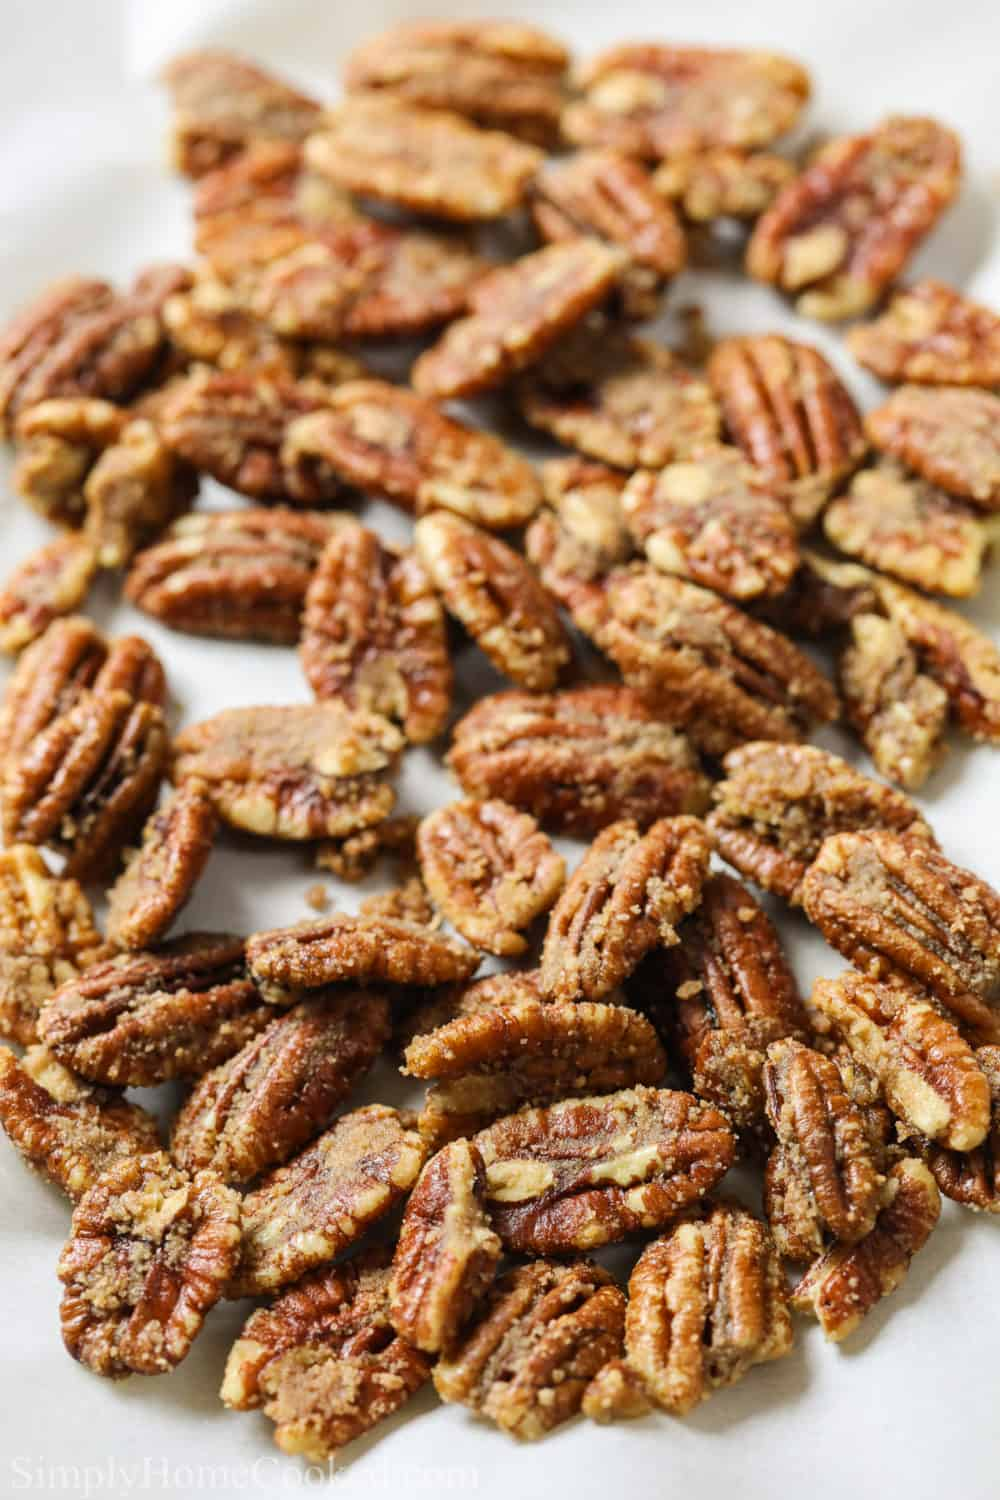 close up image of homemade candied pecans cooling on parchment paper